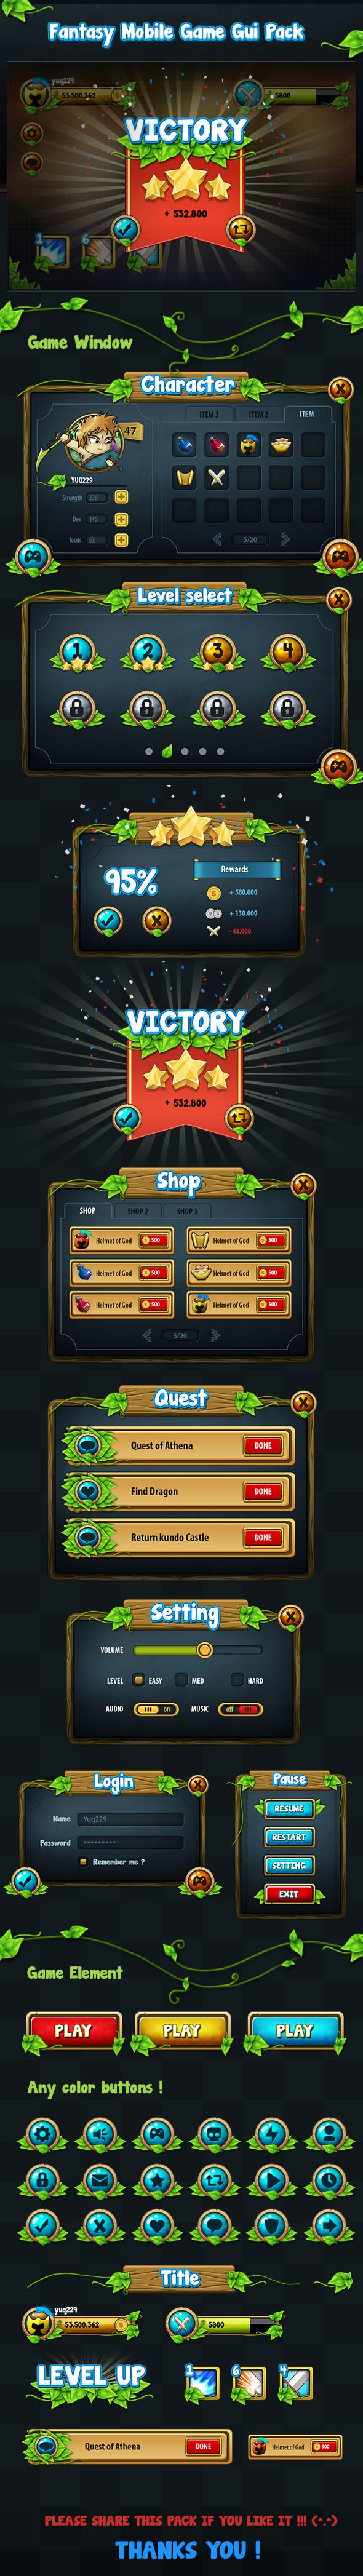 Fantasy Mobile Game Gui Pack 04 user interface ui | NOT OUR ART - Please click artwork for source | WRITING INSPIRATION for Dungeons and Dragons DND Pathfinder PFRPG Warhammer 40k Star Wars Shadowrun Call of Cthulhu and other d20 roleplaying fantasy science fiction scifi horror location equipment monster character game design | Create your own RPG Books w/ www.rpgbard.com